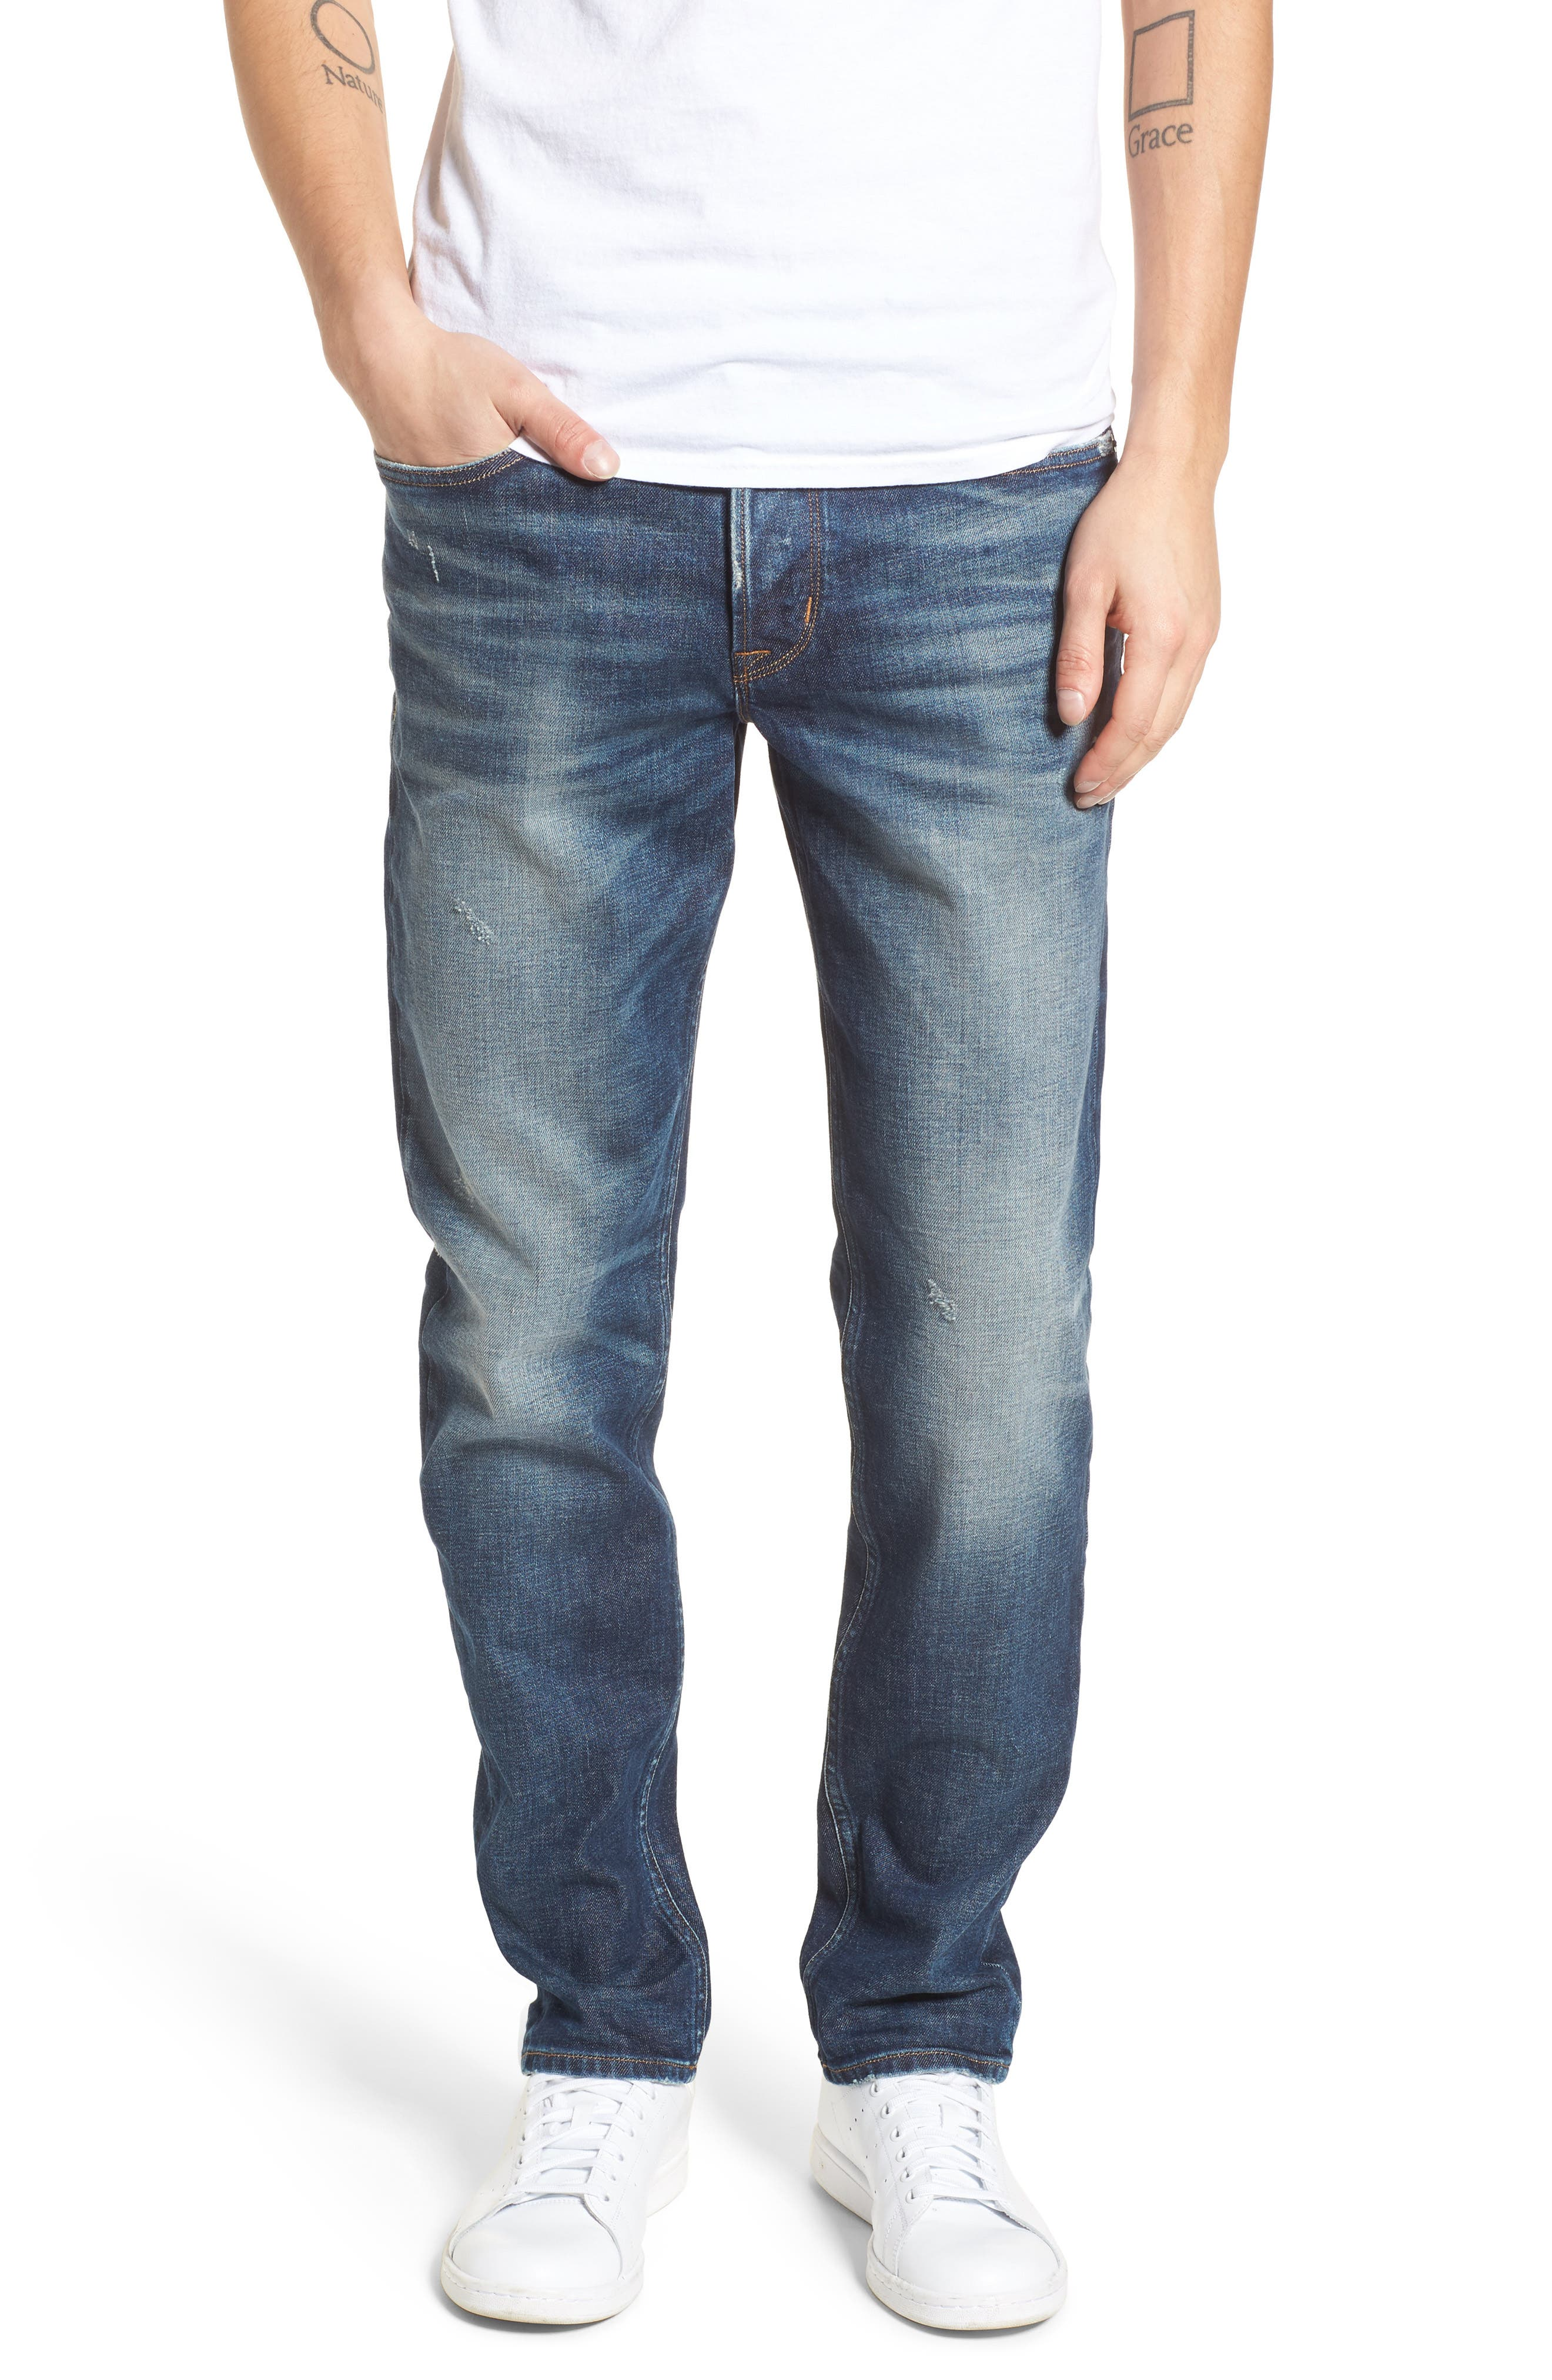 Sartor Slouchy Skinny Fit Jeans,                             Main thumbnail 1, color,                             All City